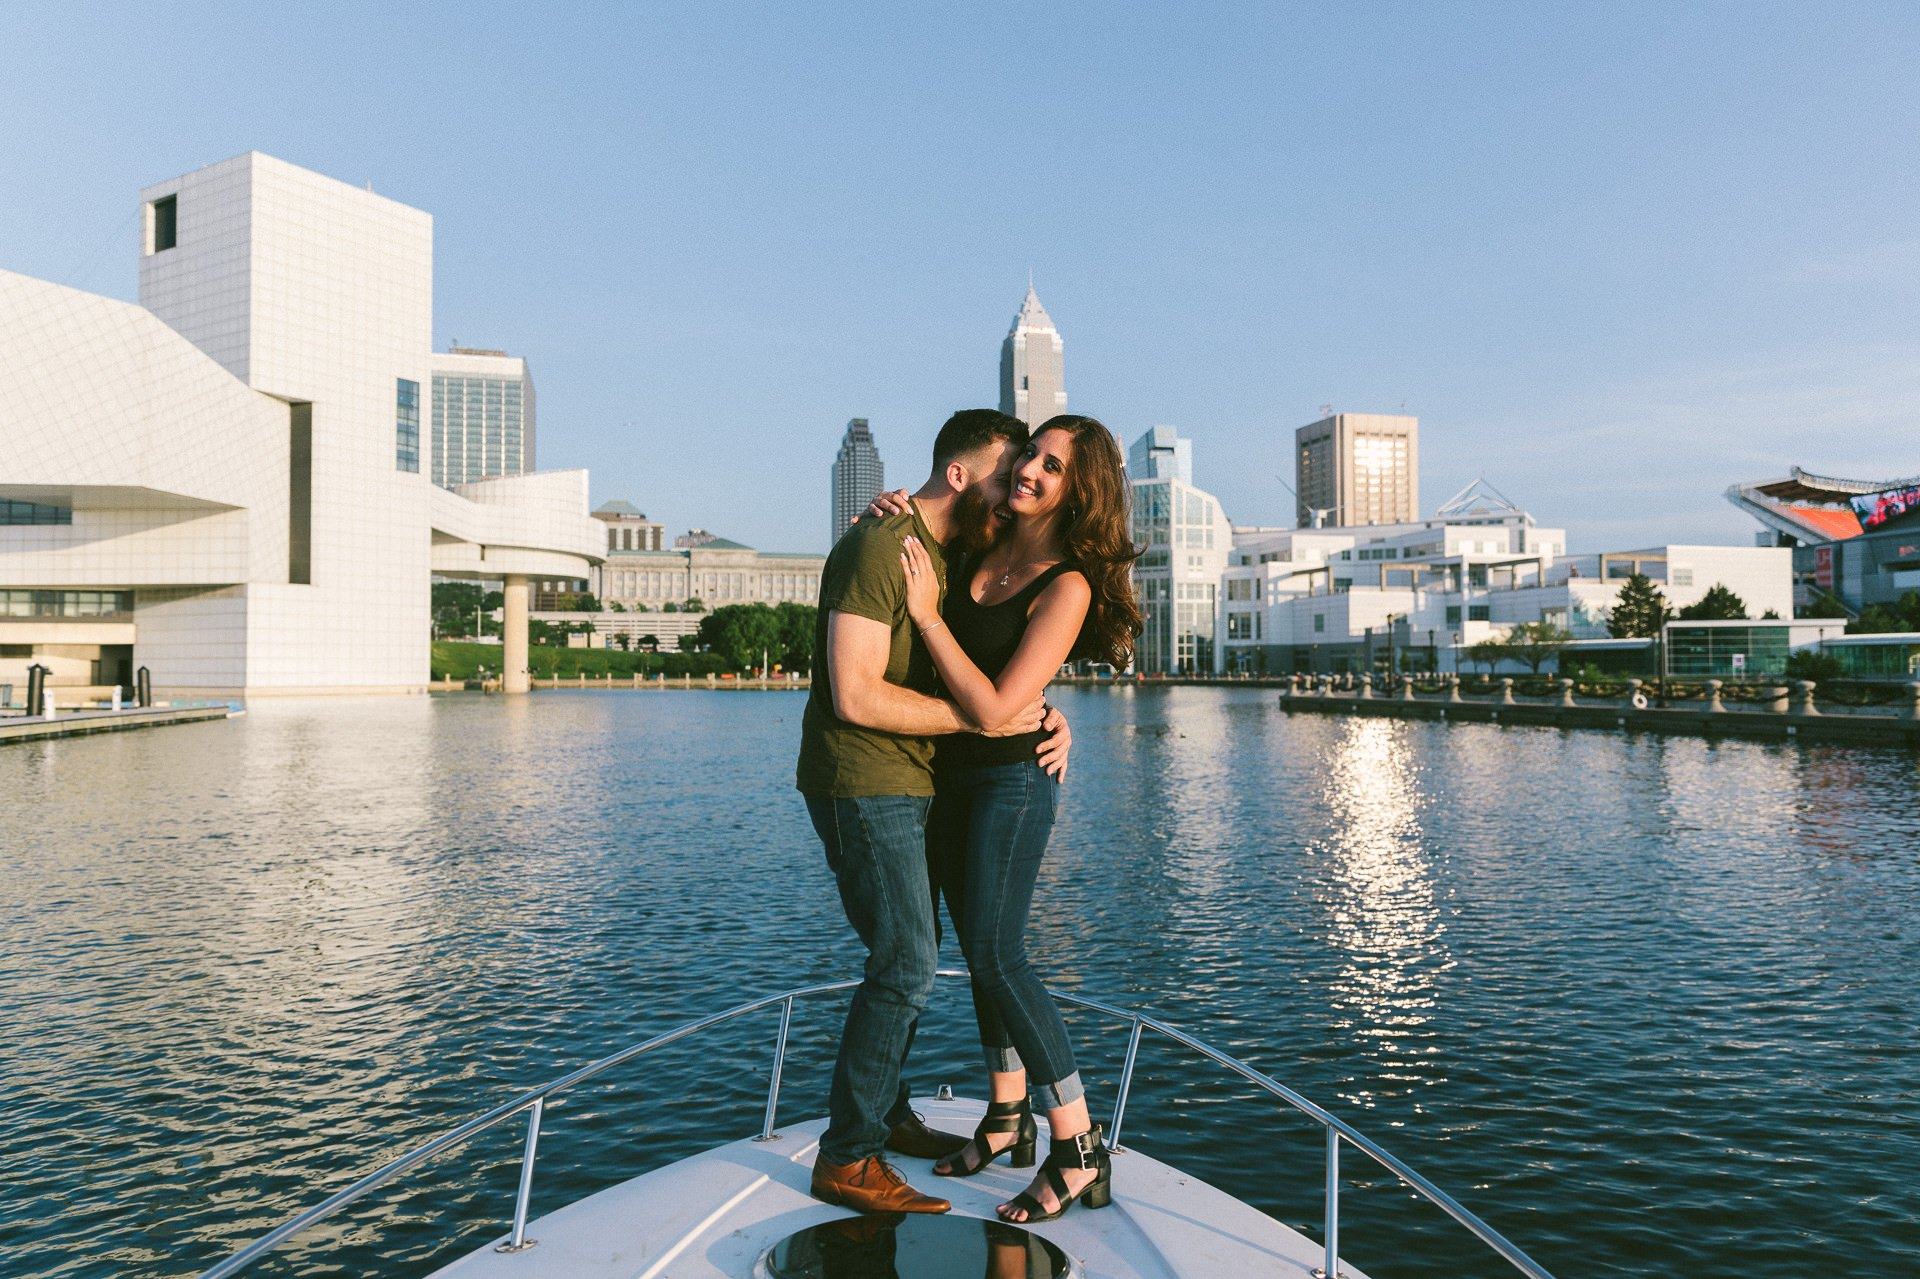 Flats East Bank Engagement Photos 17.jpg